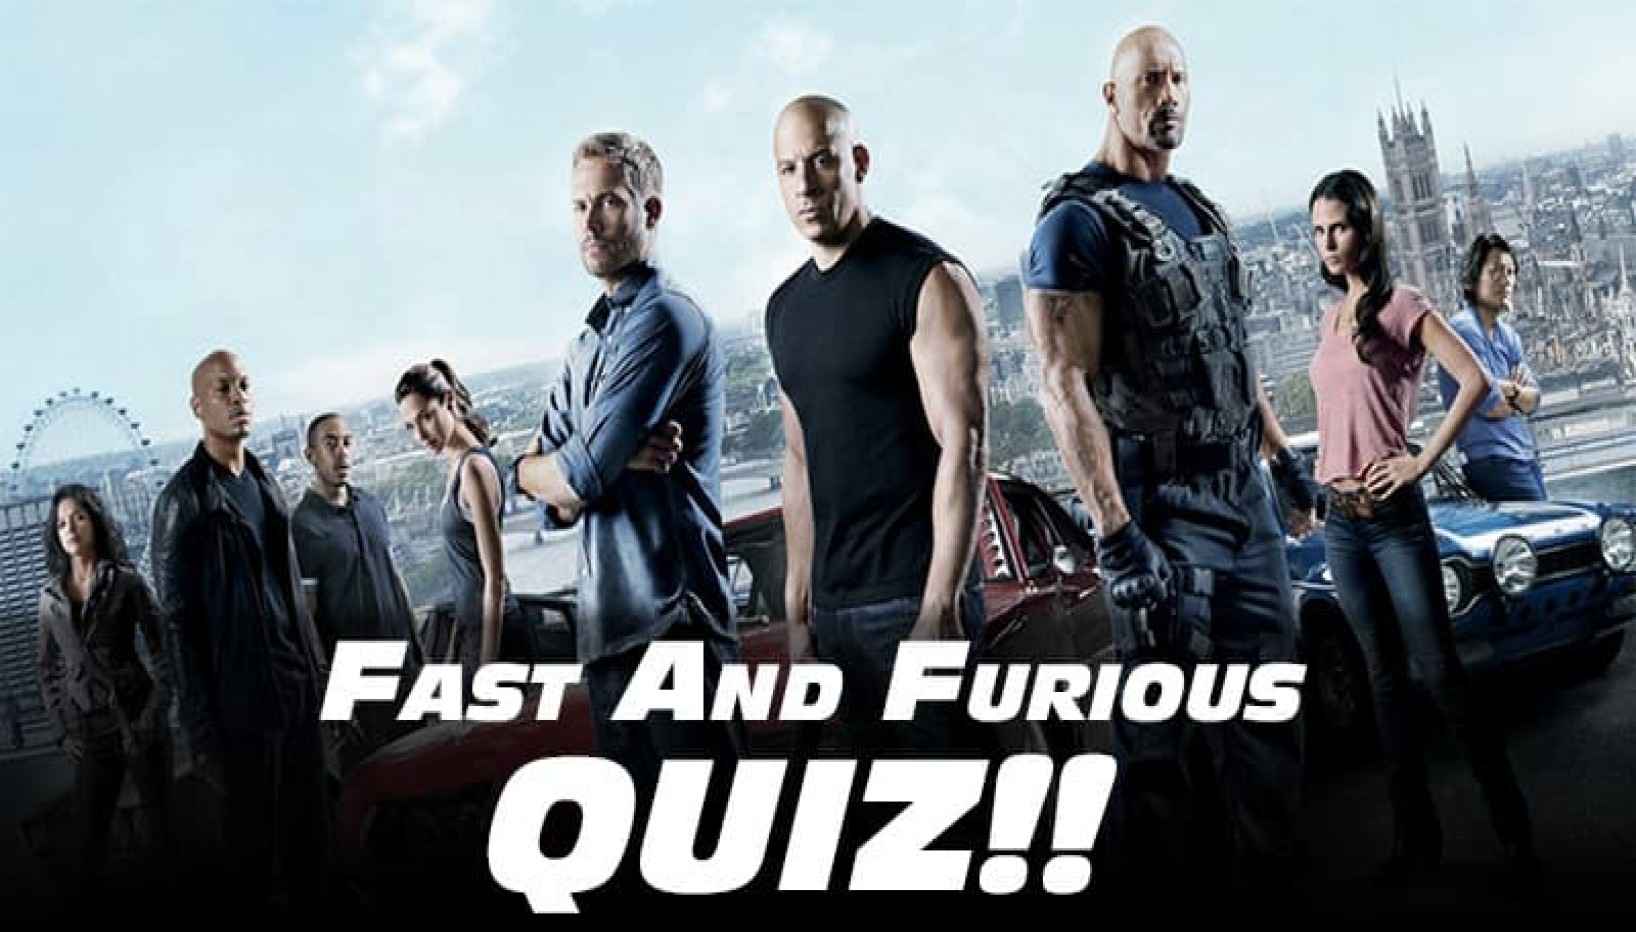 QUIZ: Score 13/13 On This Quiz To Prove You Belong To The Fast Family